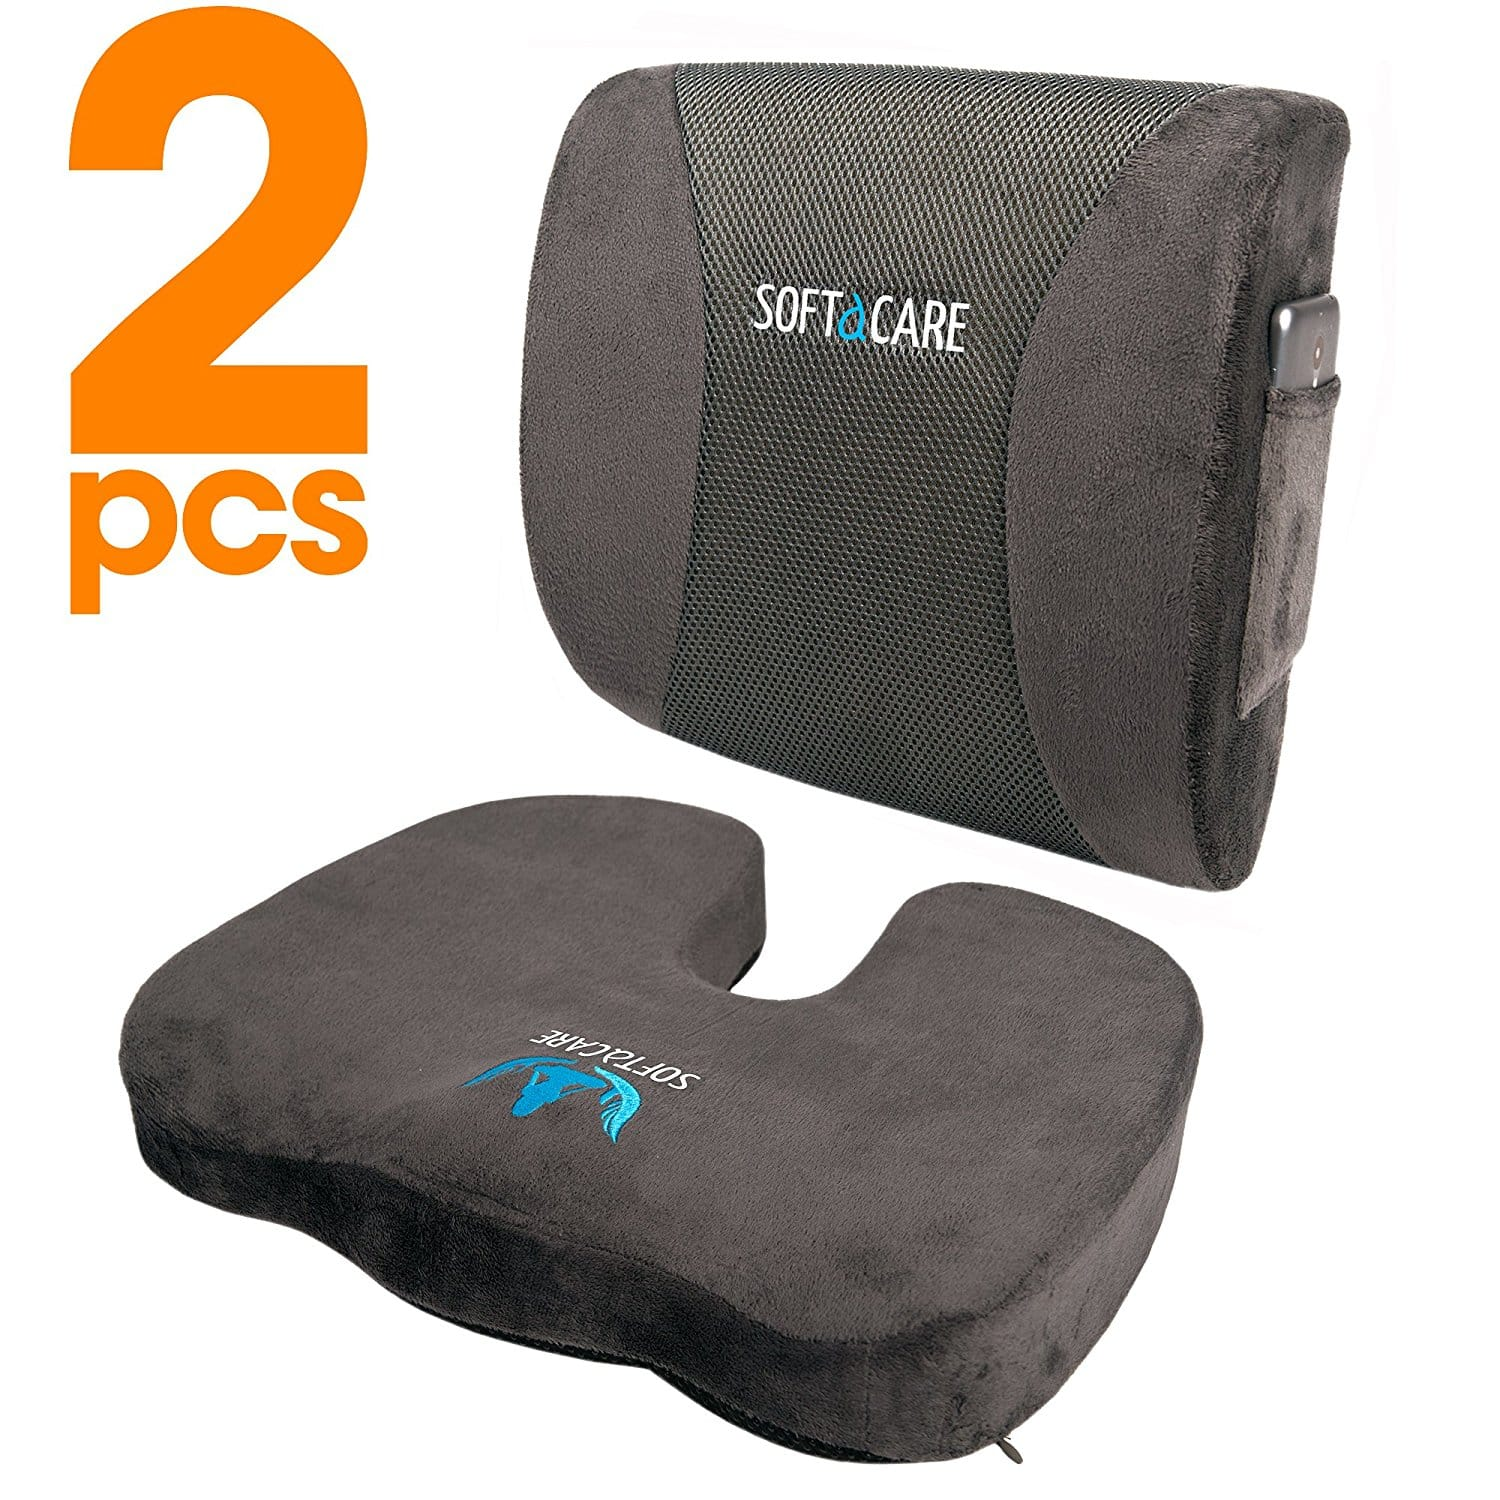 20% OFF - Seat Cushion Coccyx Orthopedic Memory Foam and Lumbar Support Pillow, Set of 2, Dark Gray - $29.41